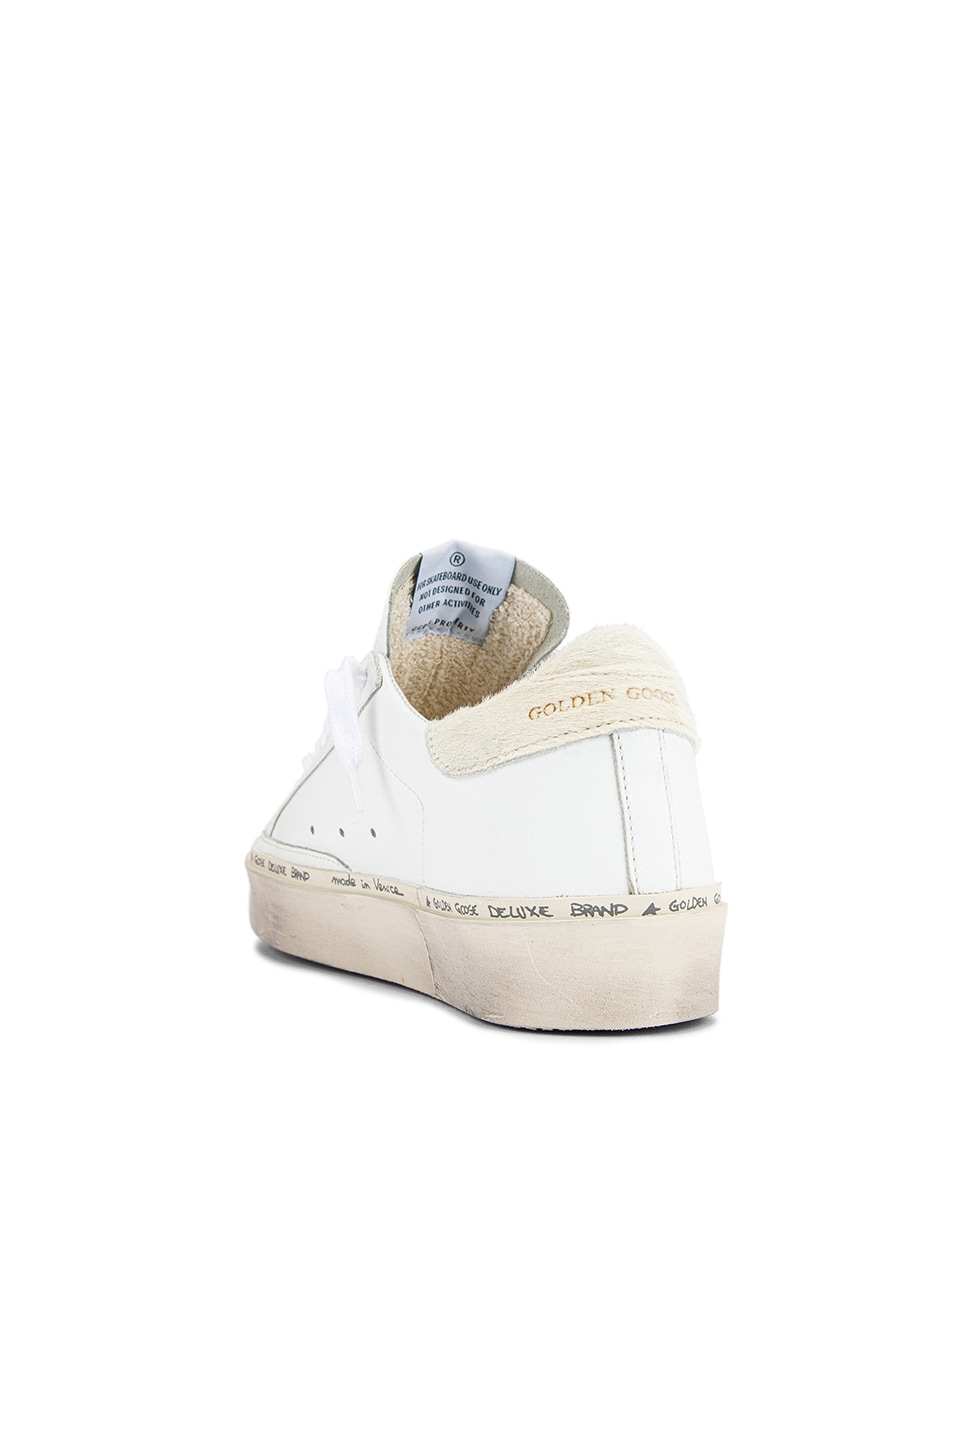 Image 3 of Golden Goose Hi Star Sneaker in White Leather & Carved